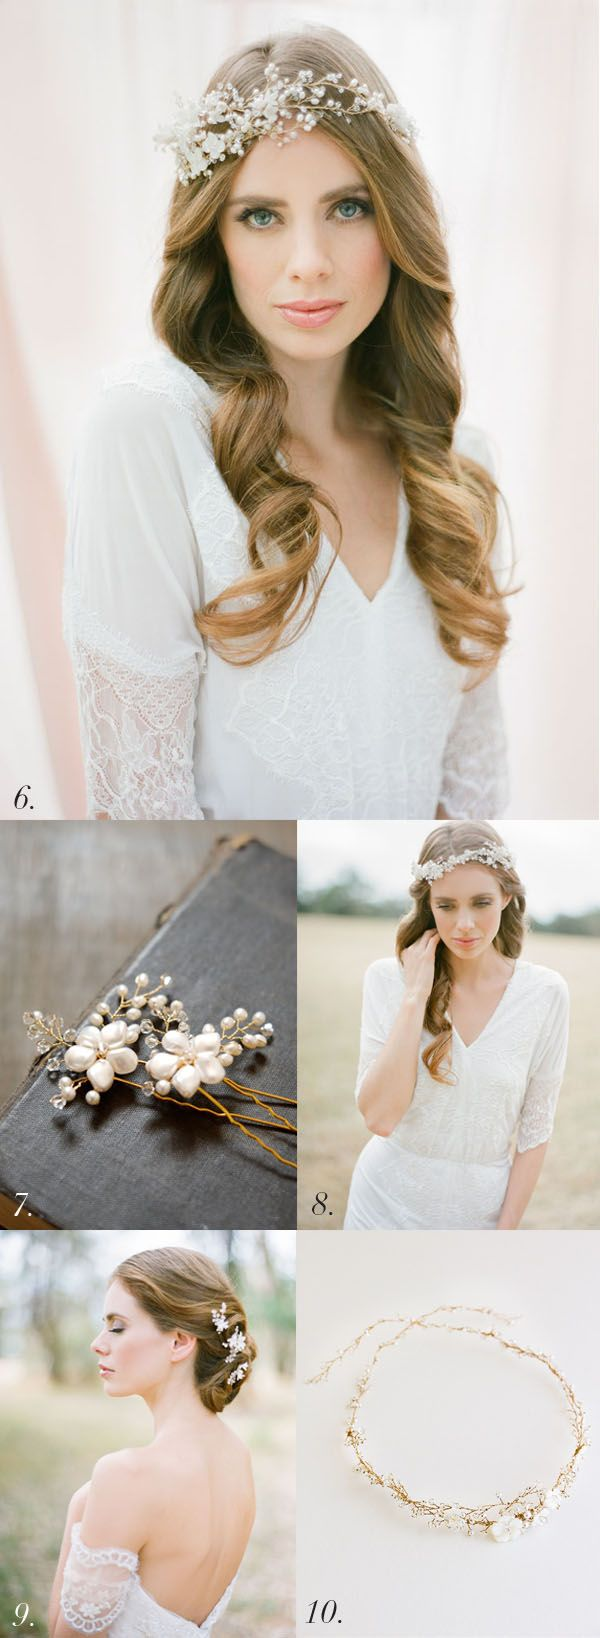 Awe inspiring pinterest the world39s catalog of ideas updo hairstyles - 10 Glorious Rose Gold Bridal Headpieces Percy Handmade